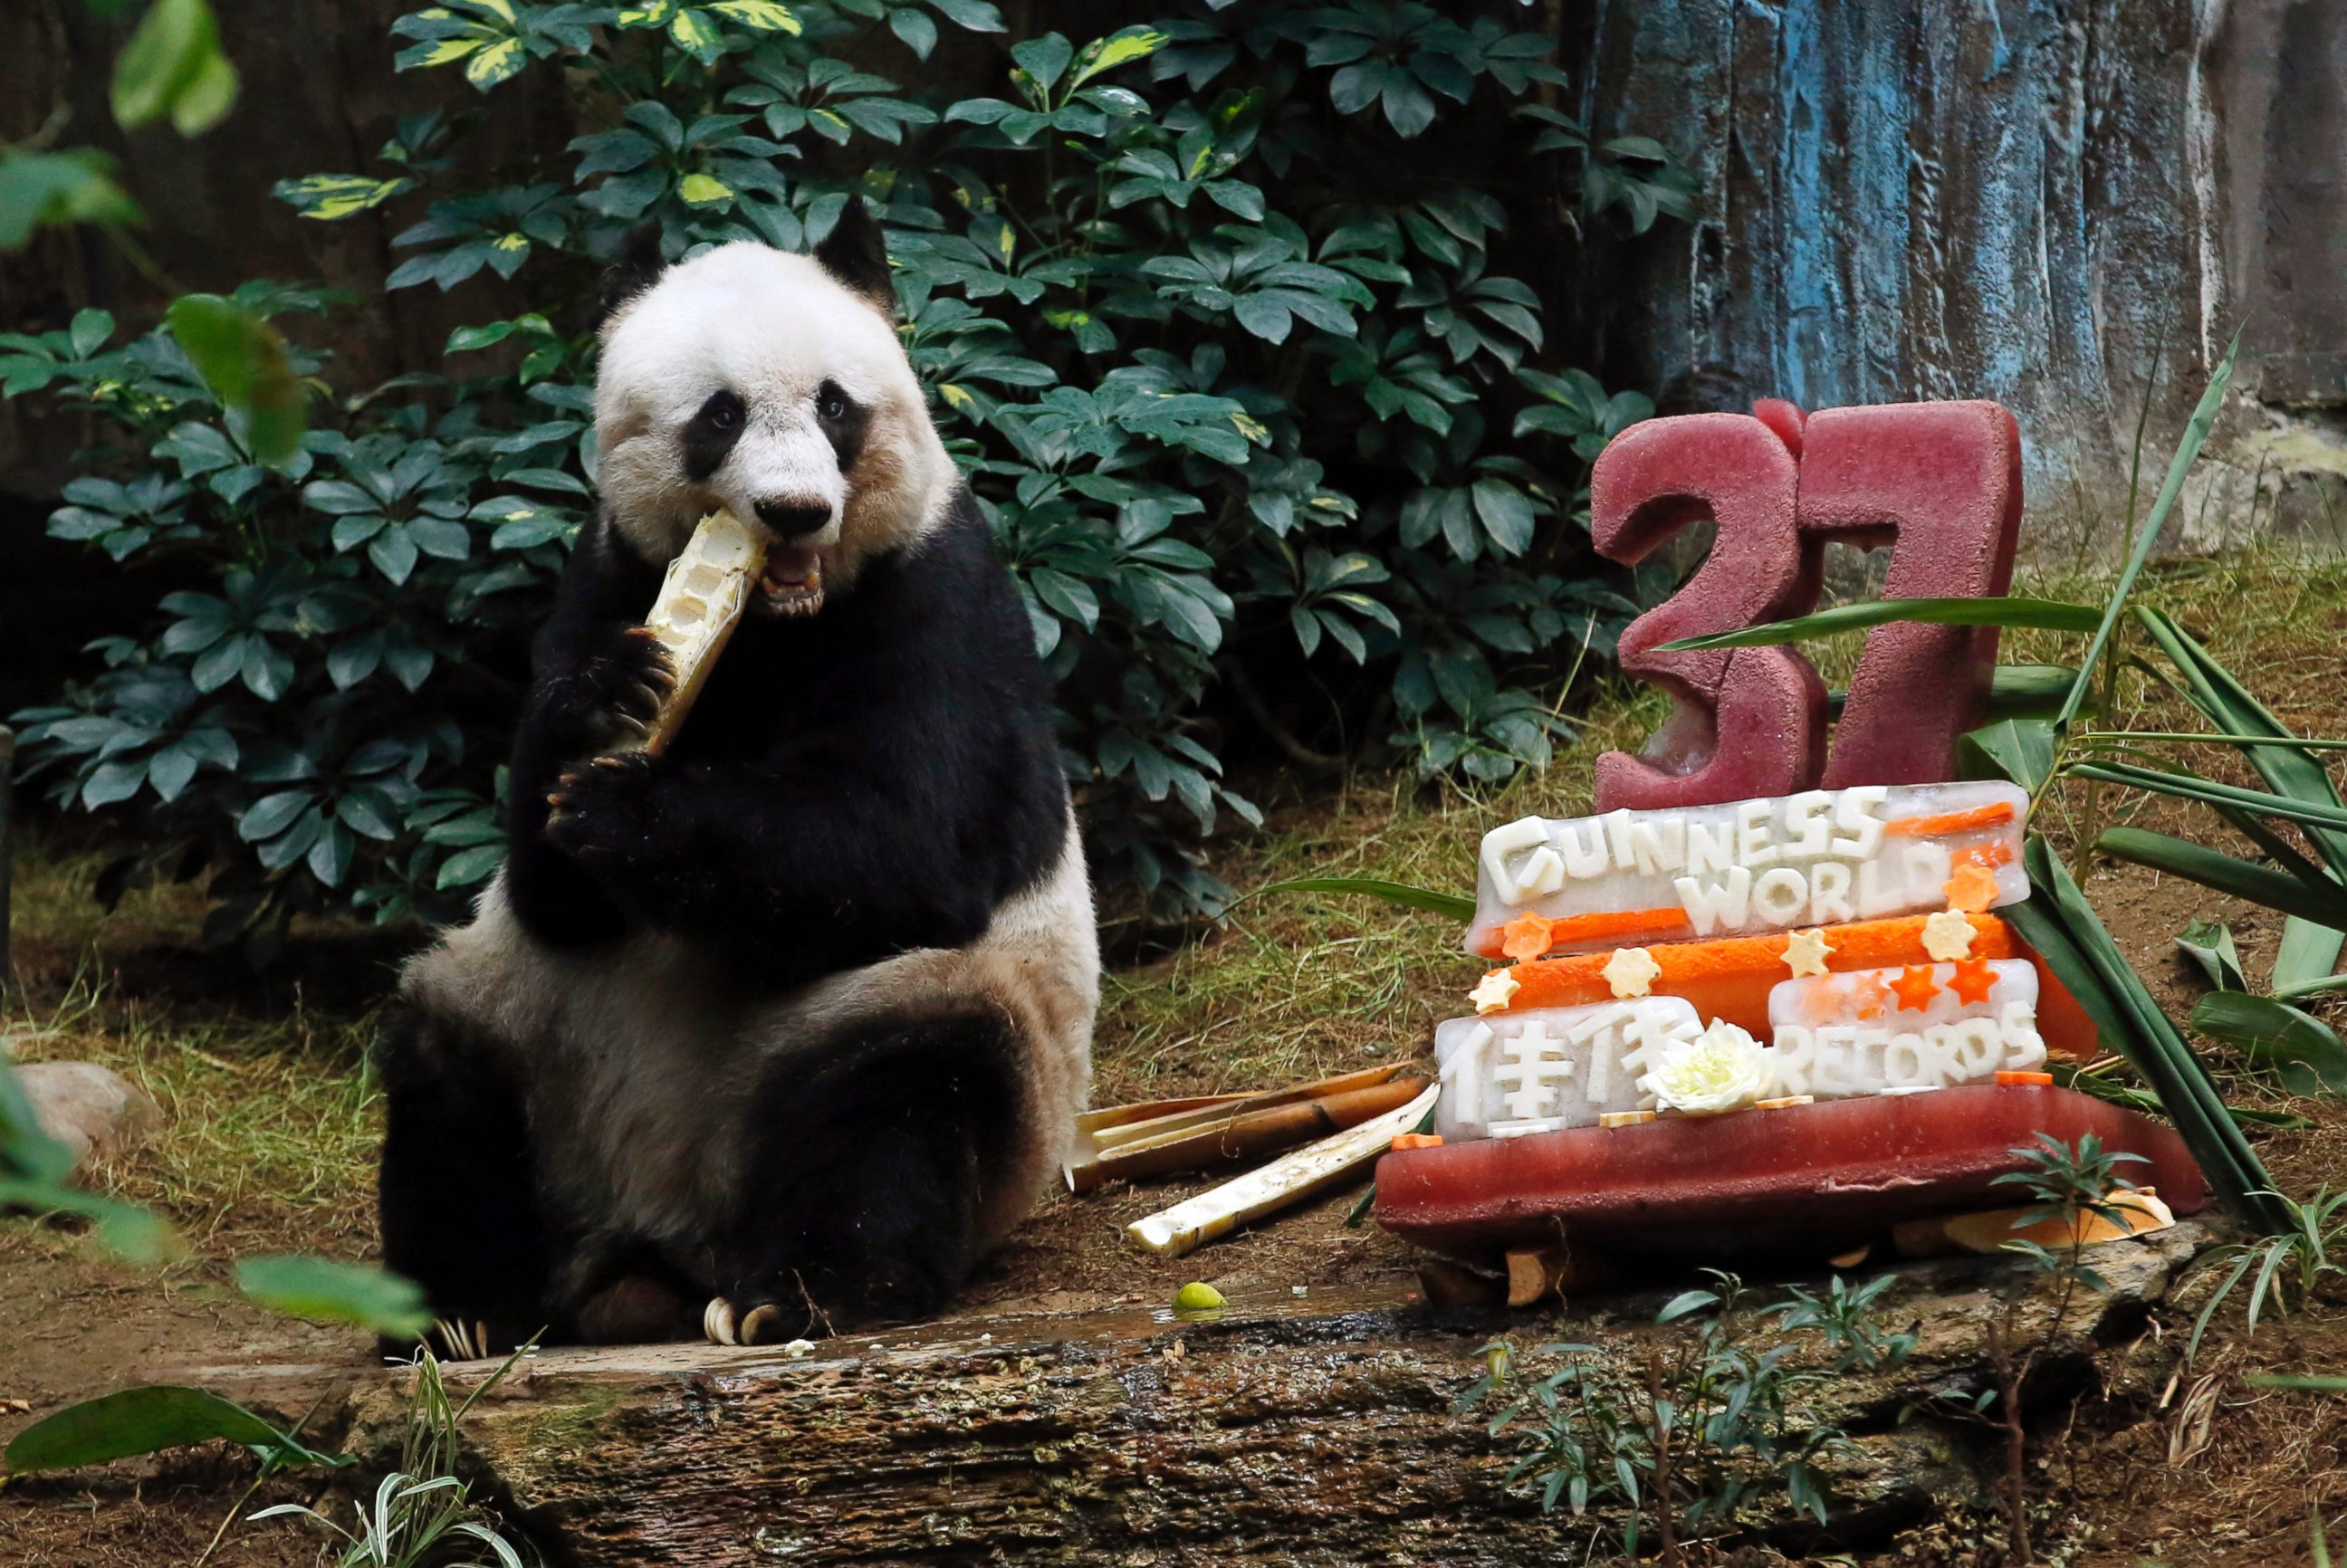 See the World's Oldest Panda Celebrate Her Birthday